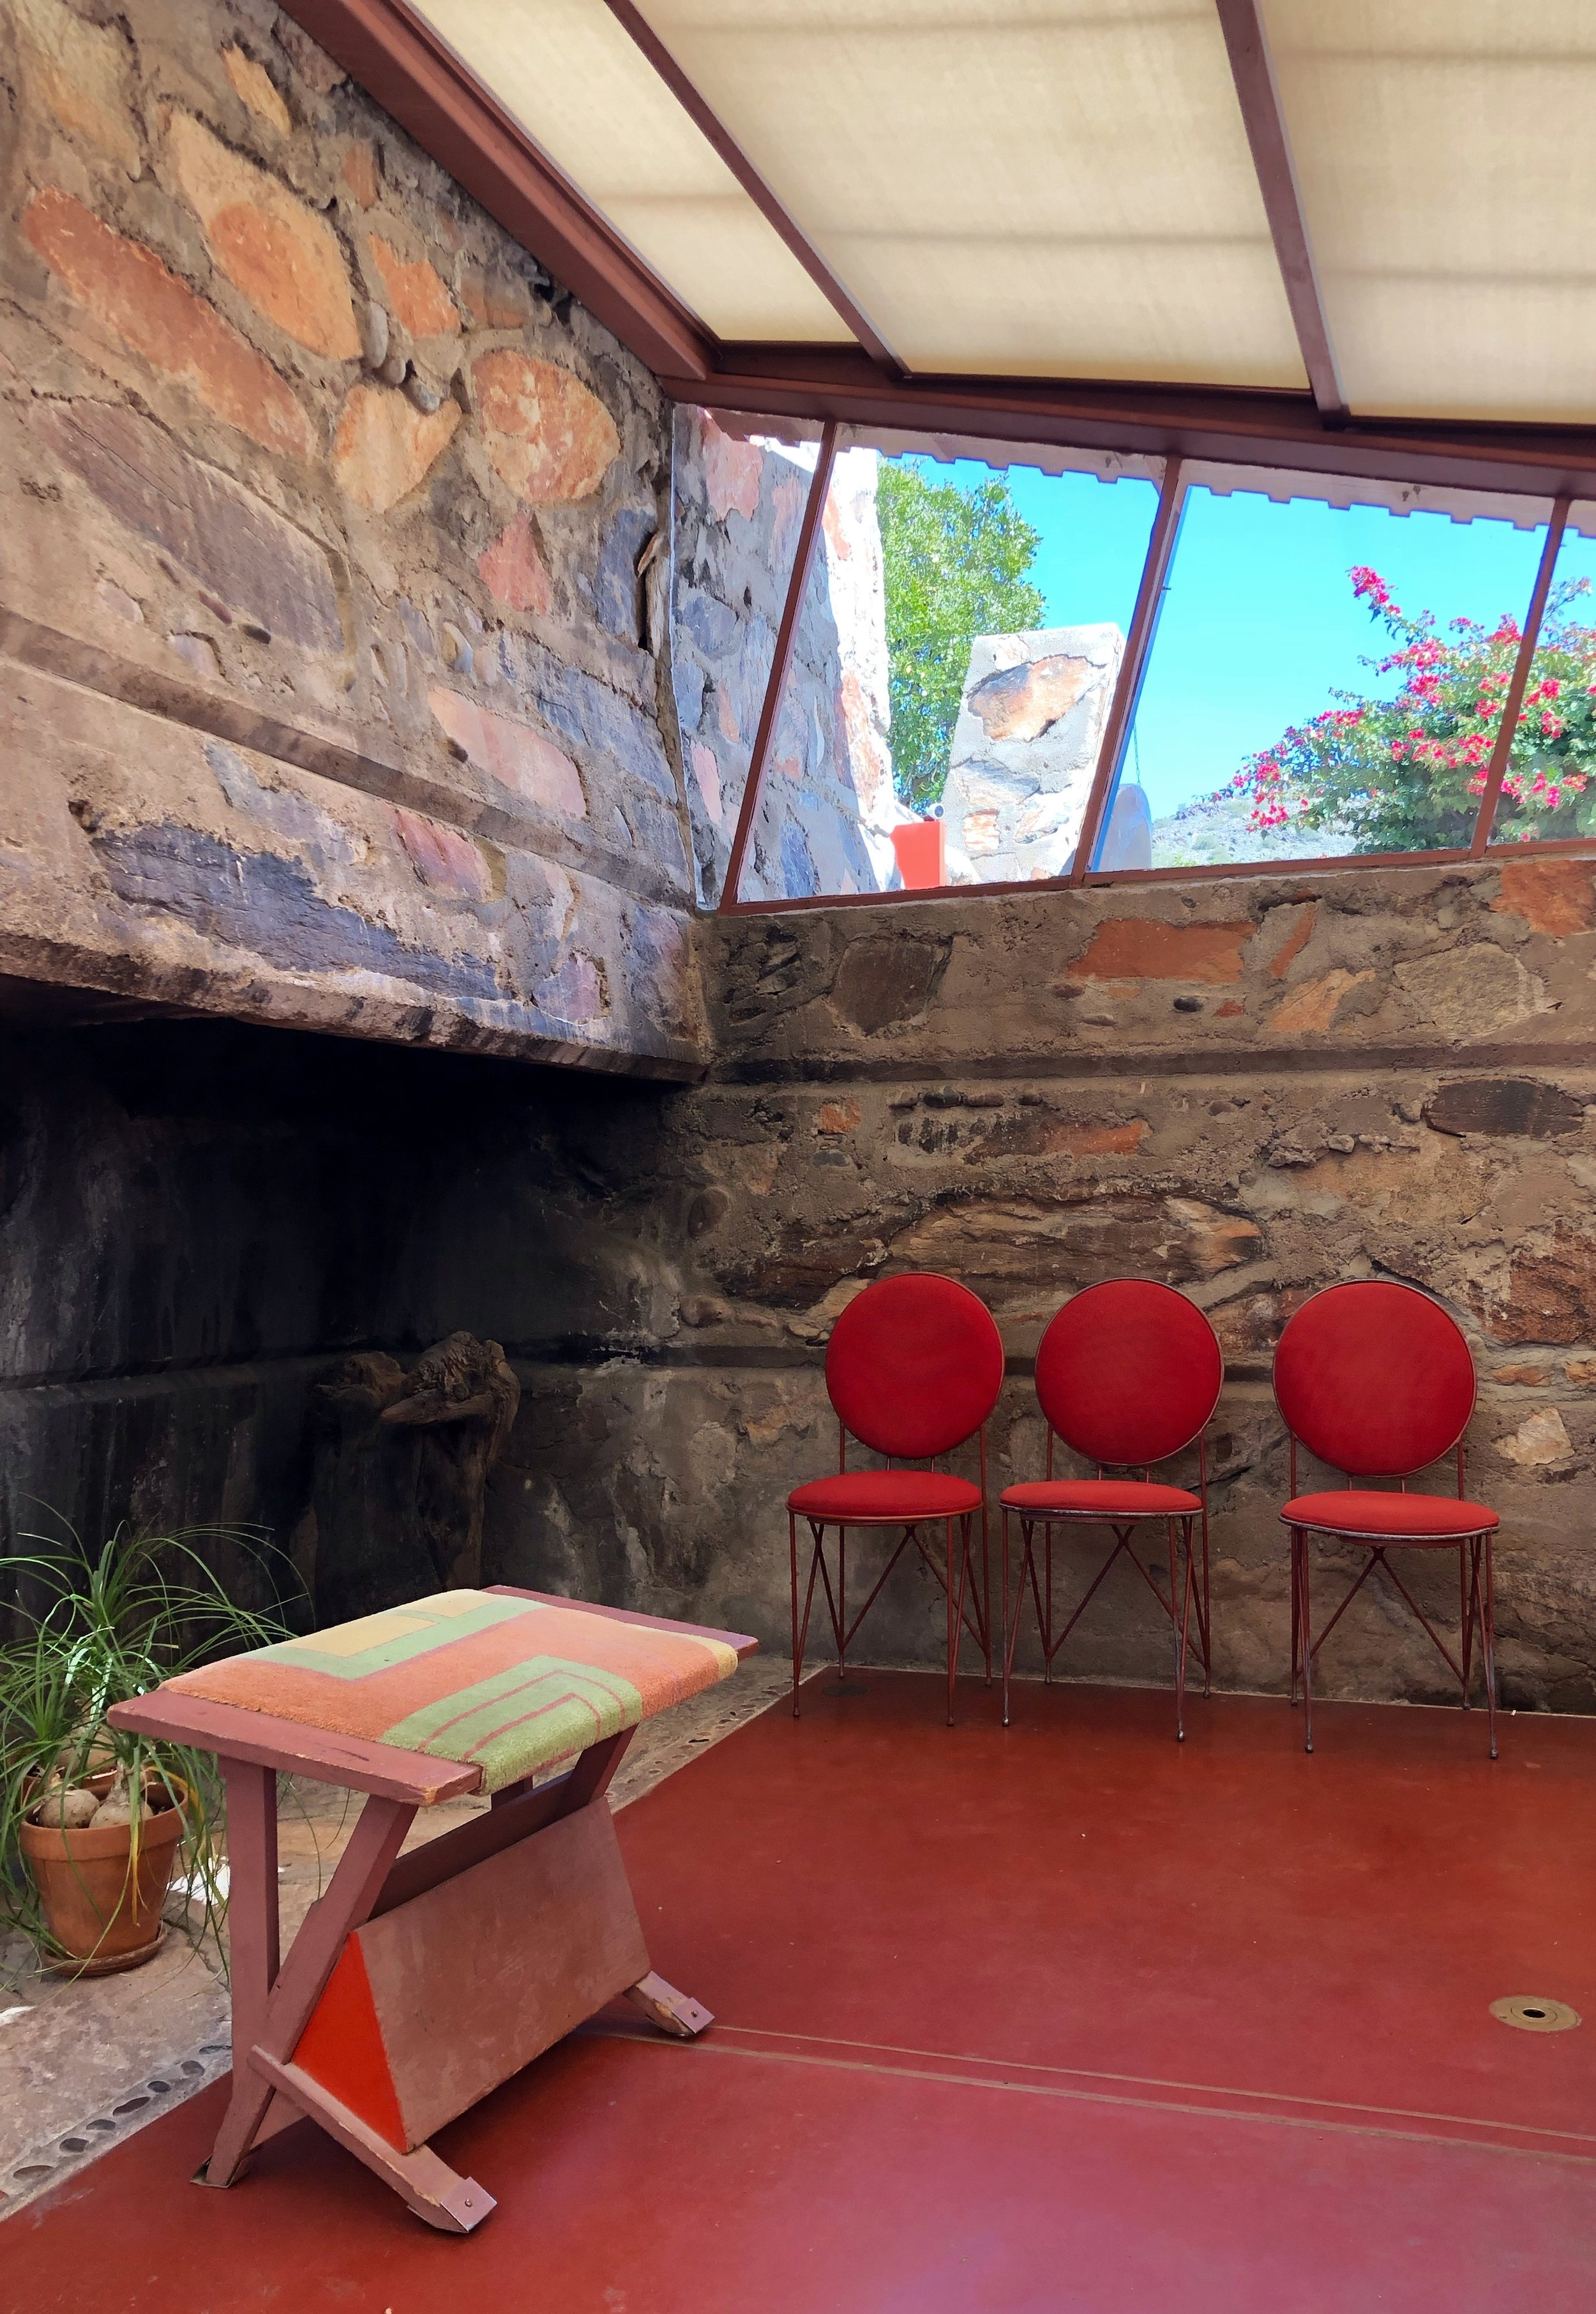 Frank Lloyd Wright and his studio in Taliesen West in Scottsdale, Azizona